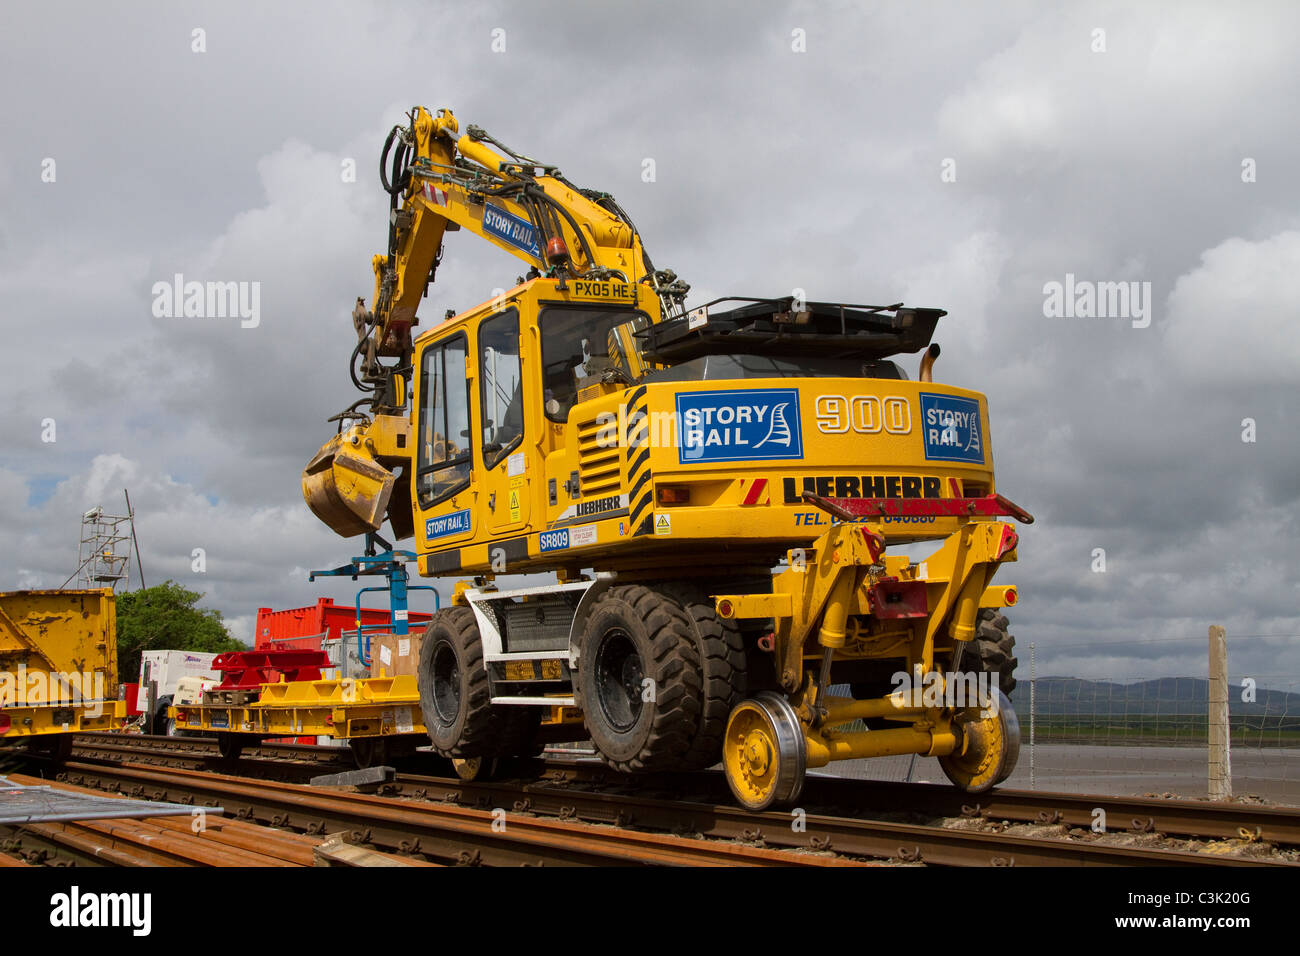 Story Rail _Liebherr A 900 C ZW Hydraulic Excavator Track renewals to Arnside 150-year-old rail viaduct, Cumbria, - Stock Image